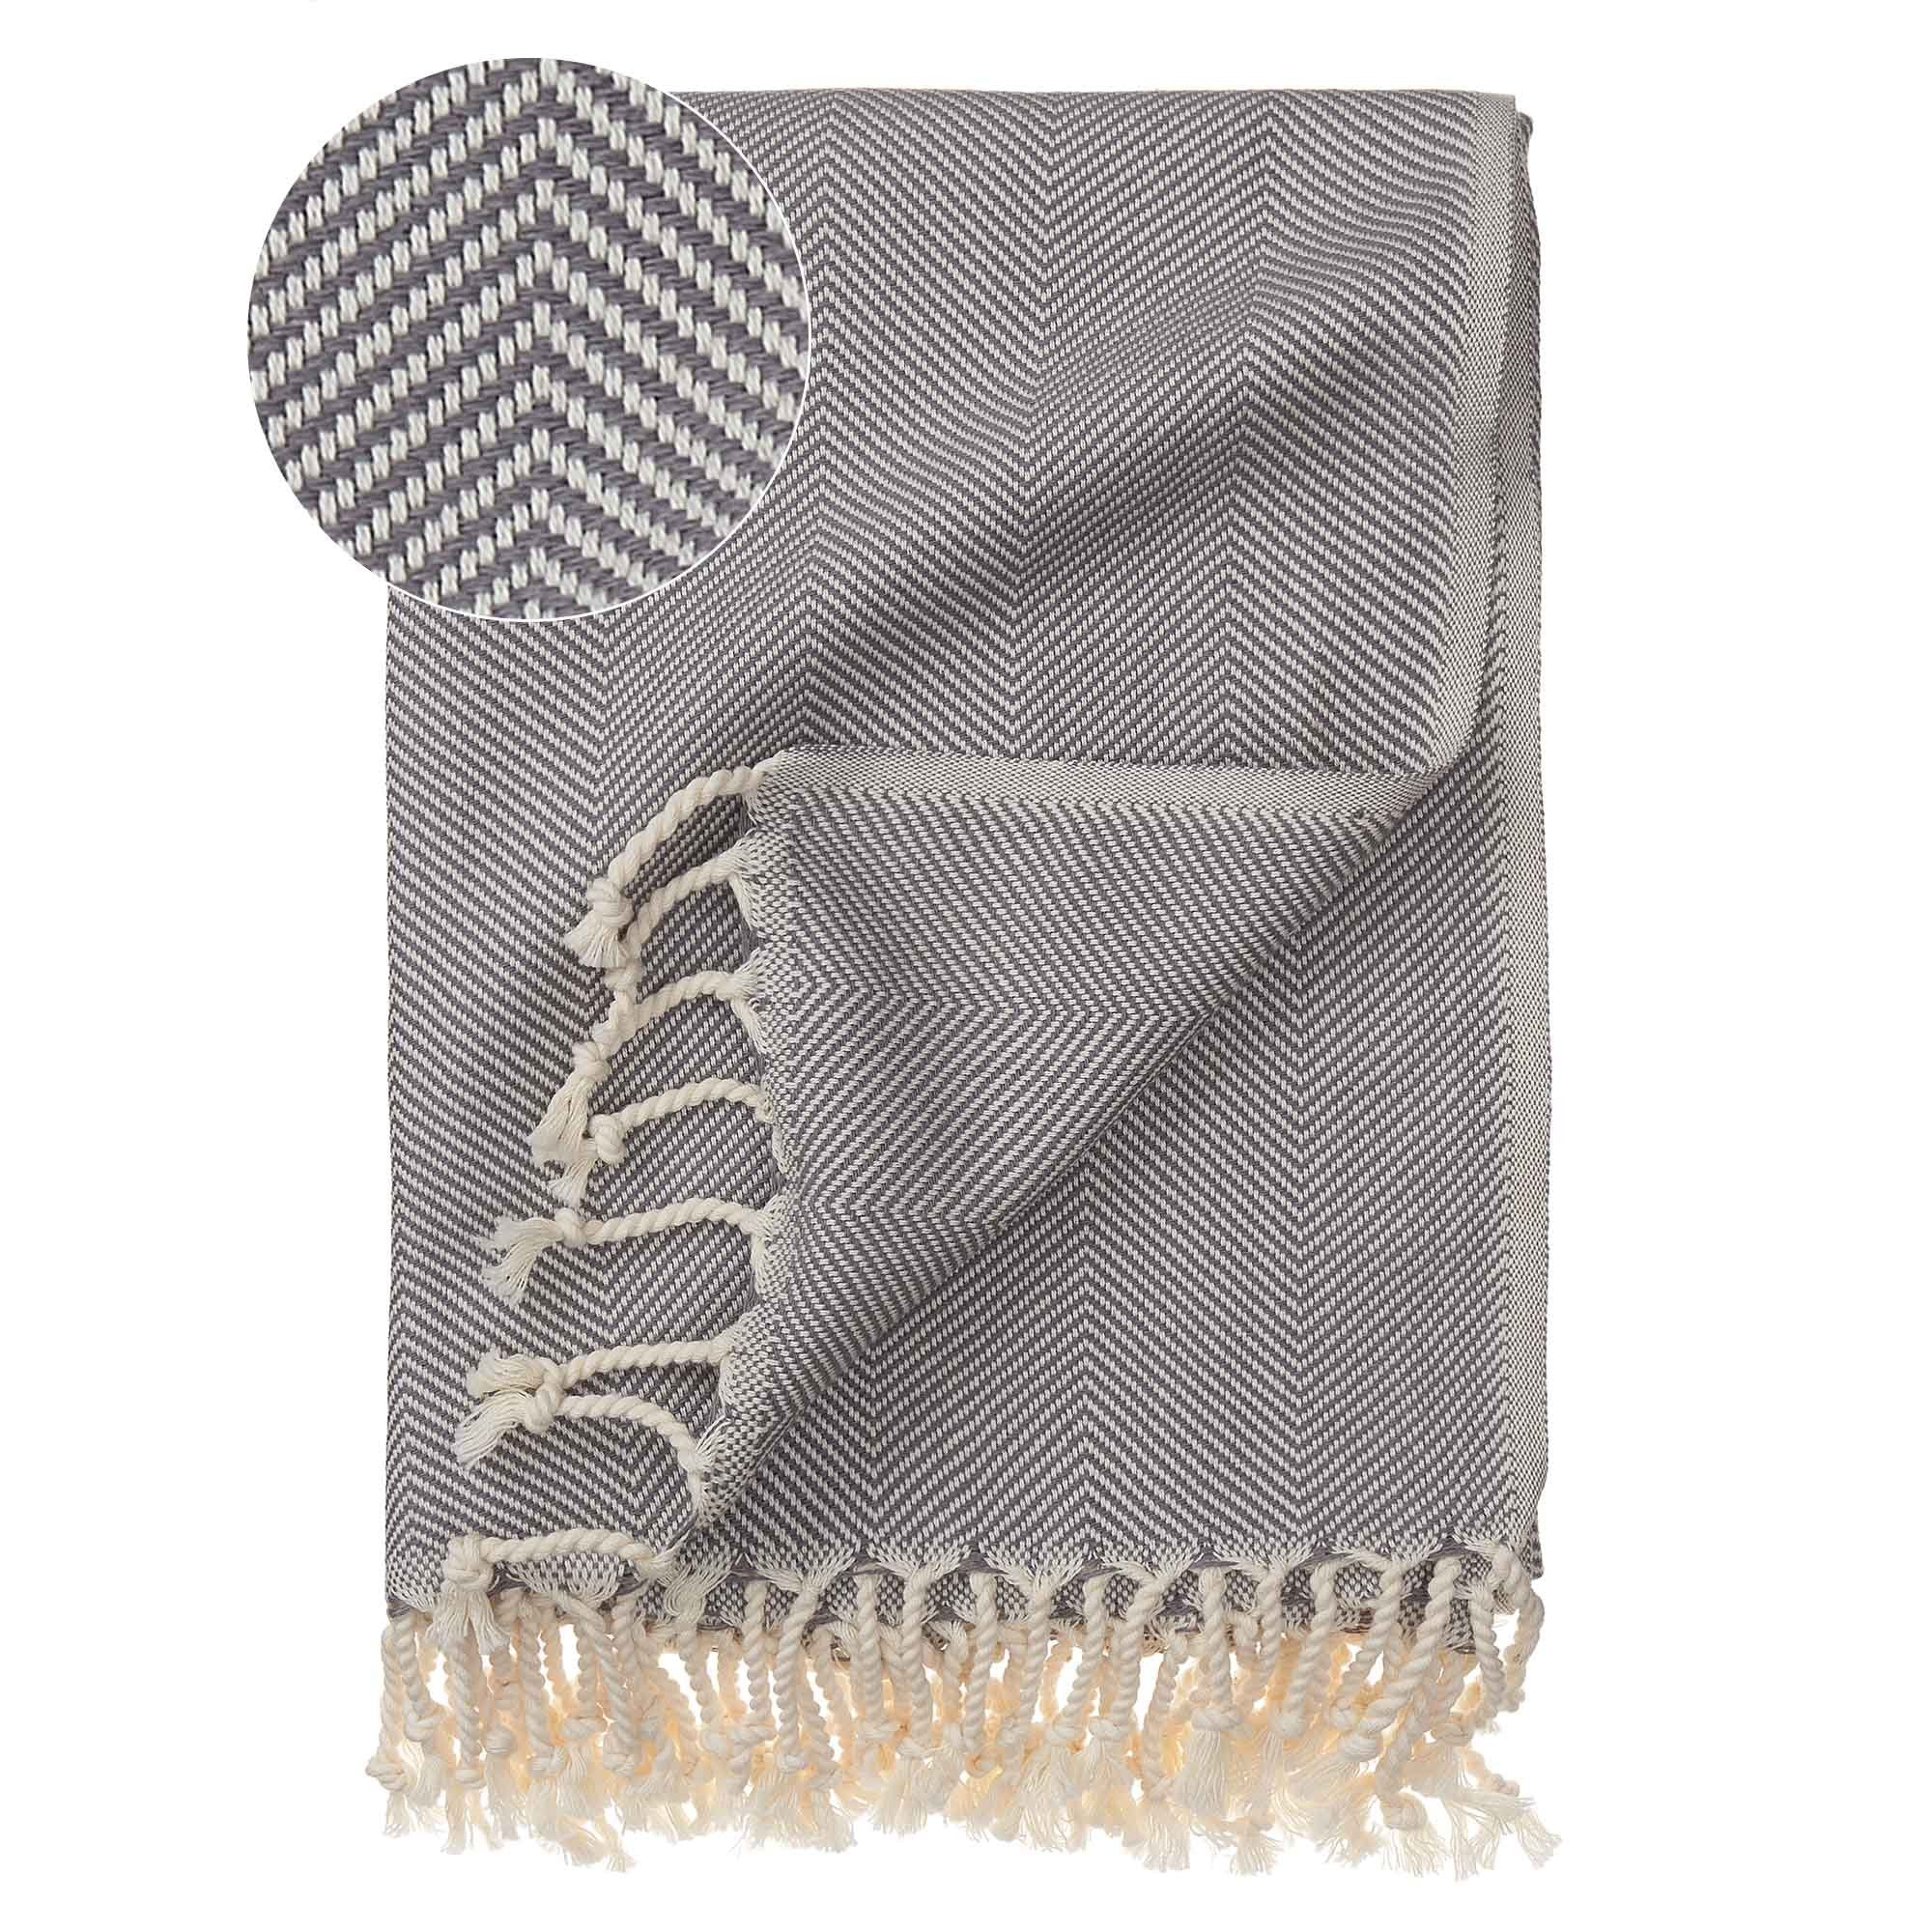 Laza Hammam Towel [Grey/White]